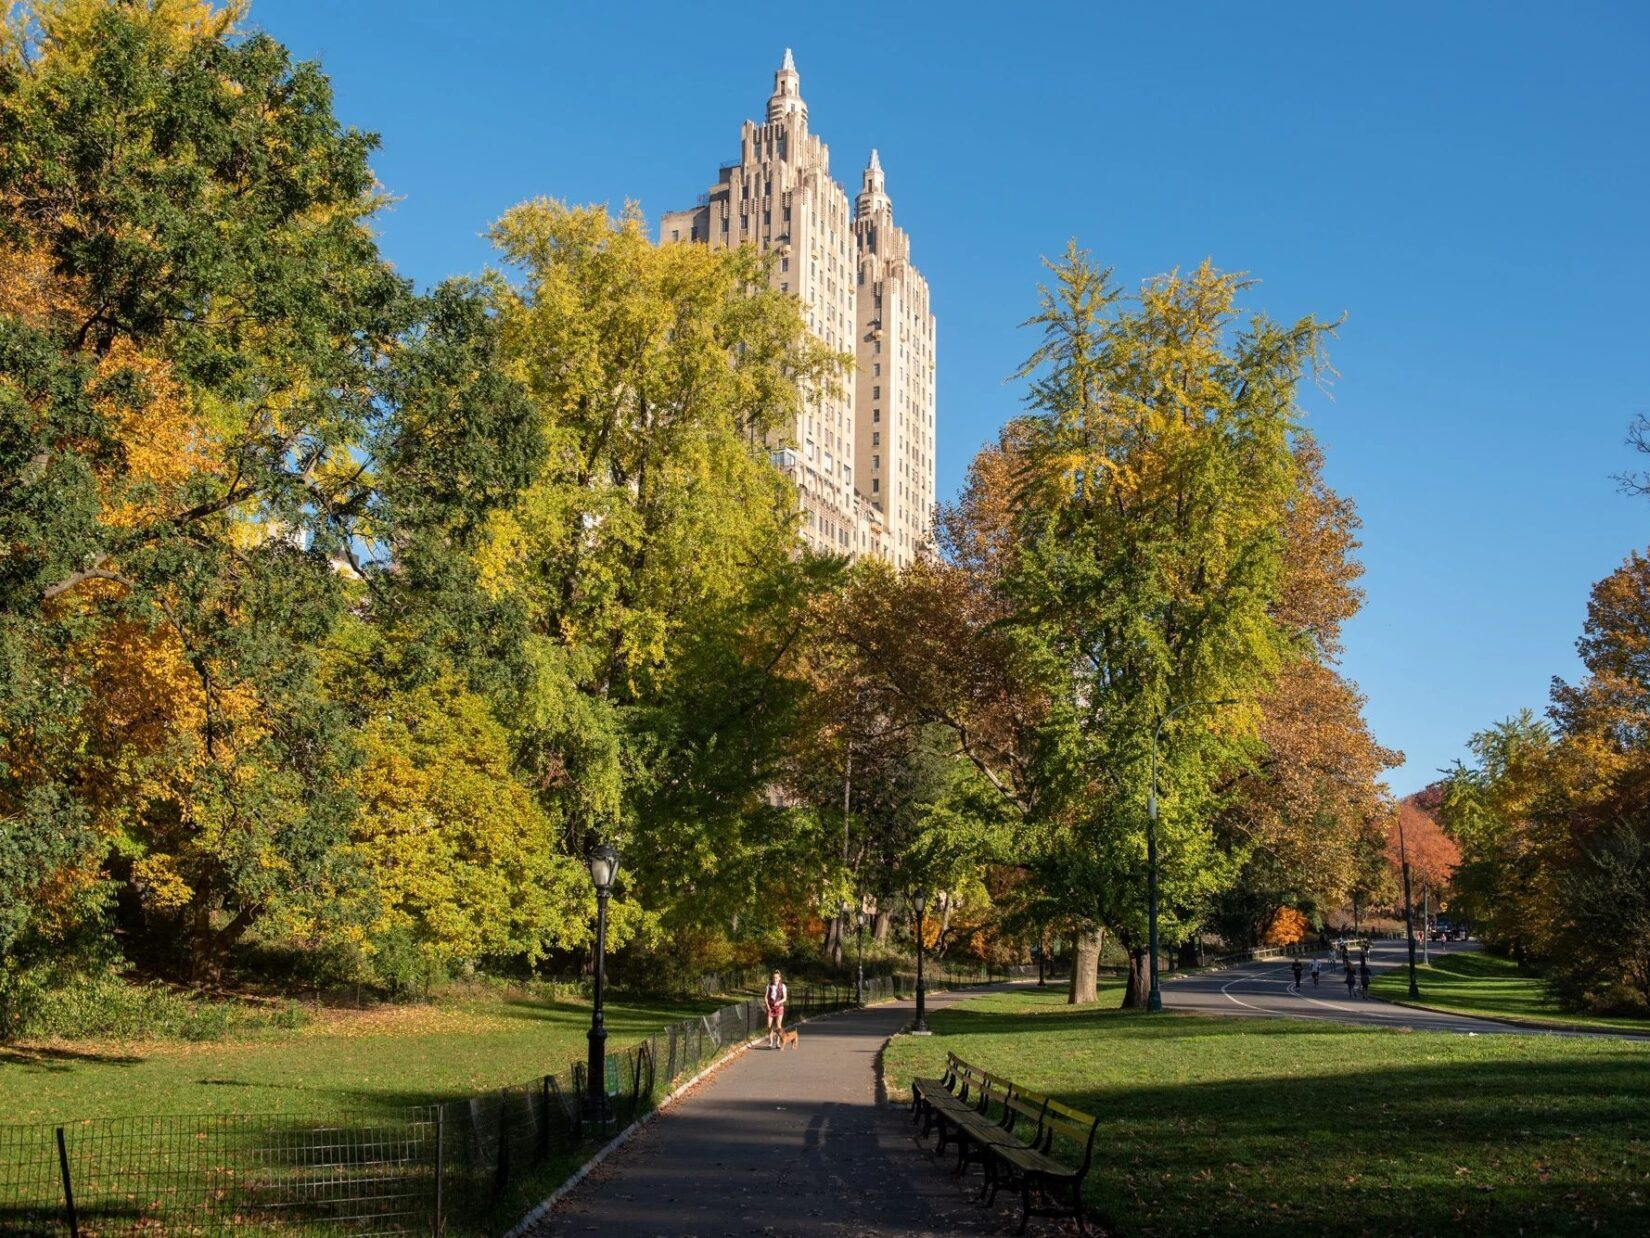 A view down the path through the landscape, with the buildings of Central Park West in the background, on a clear fall day.